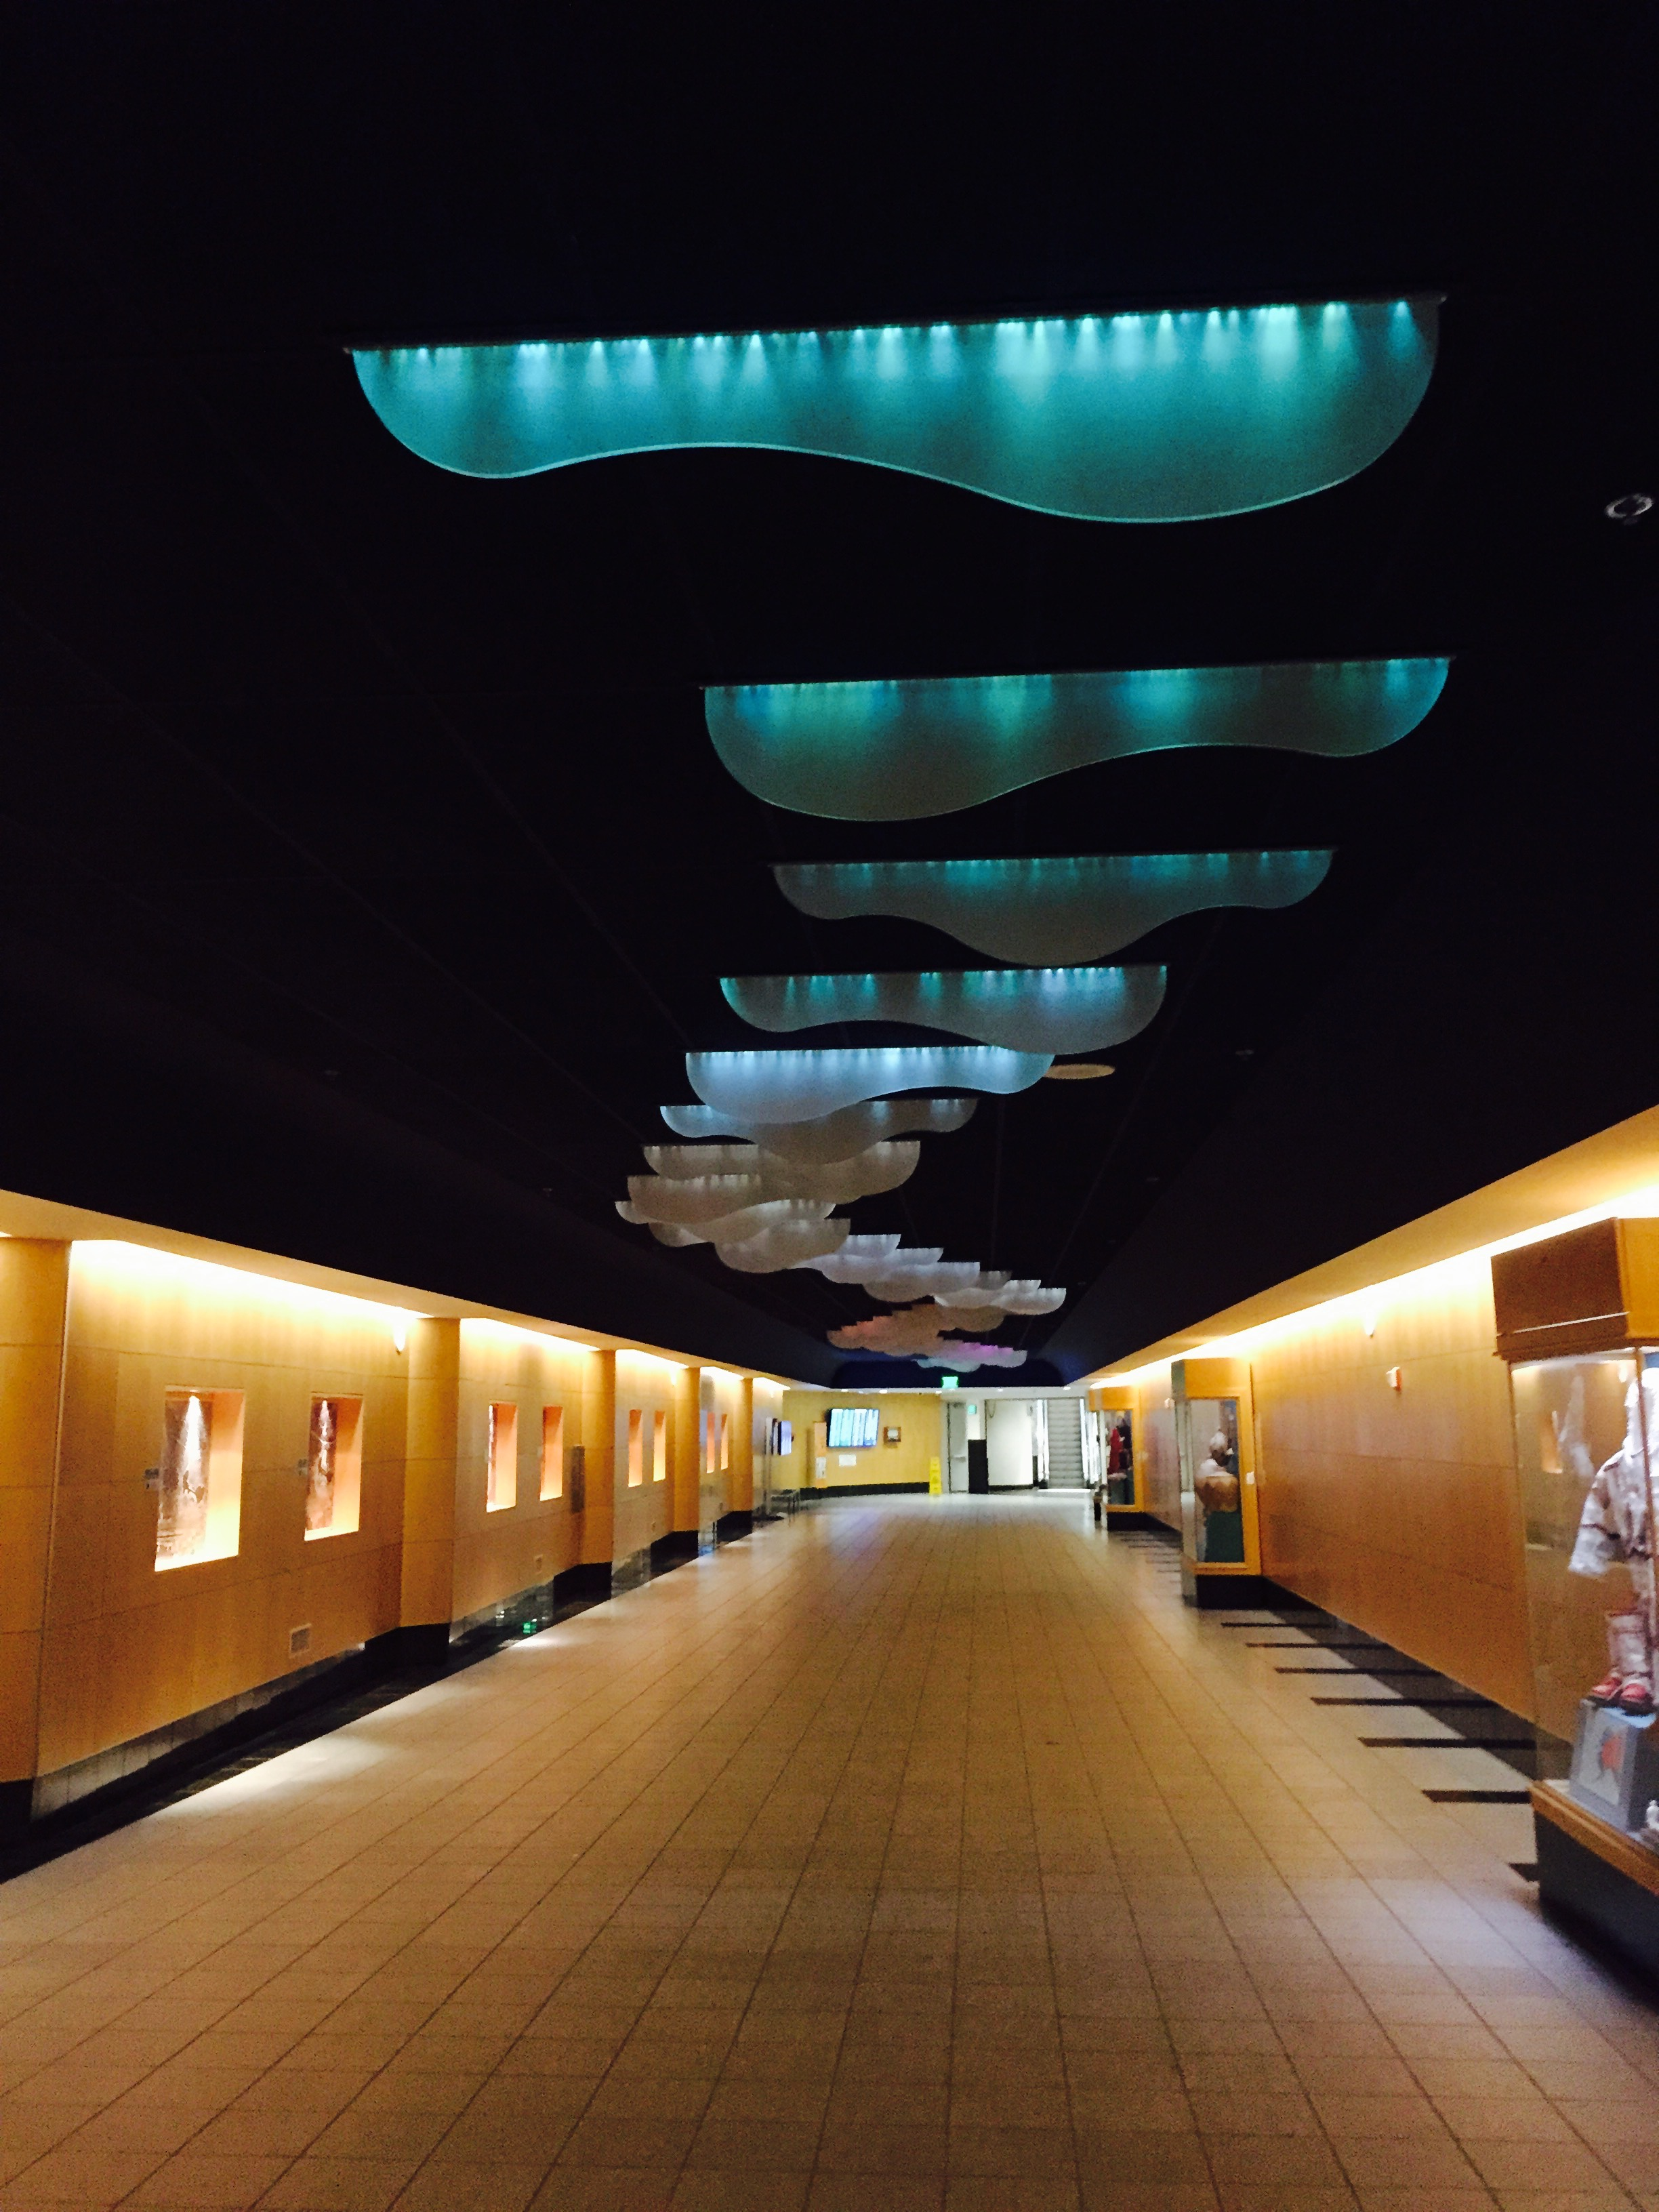 Exiting the Anchorage Airport. Love the Aurora installation